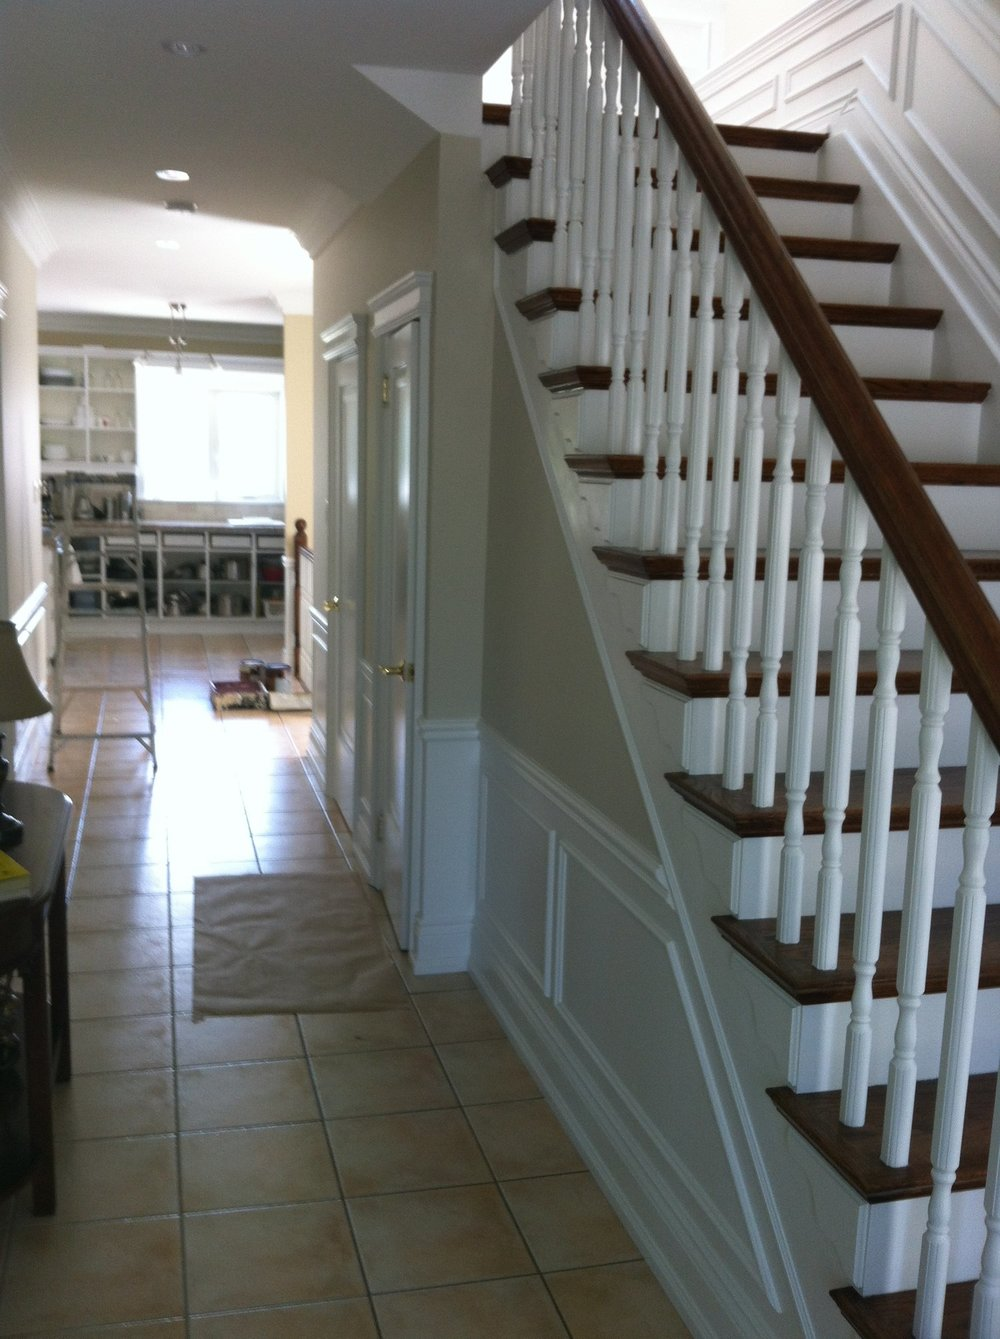 Painting services near me.JPG